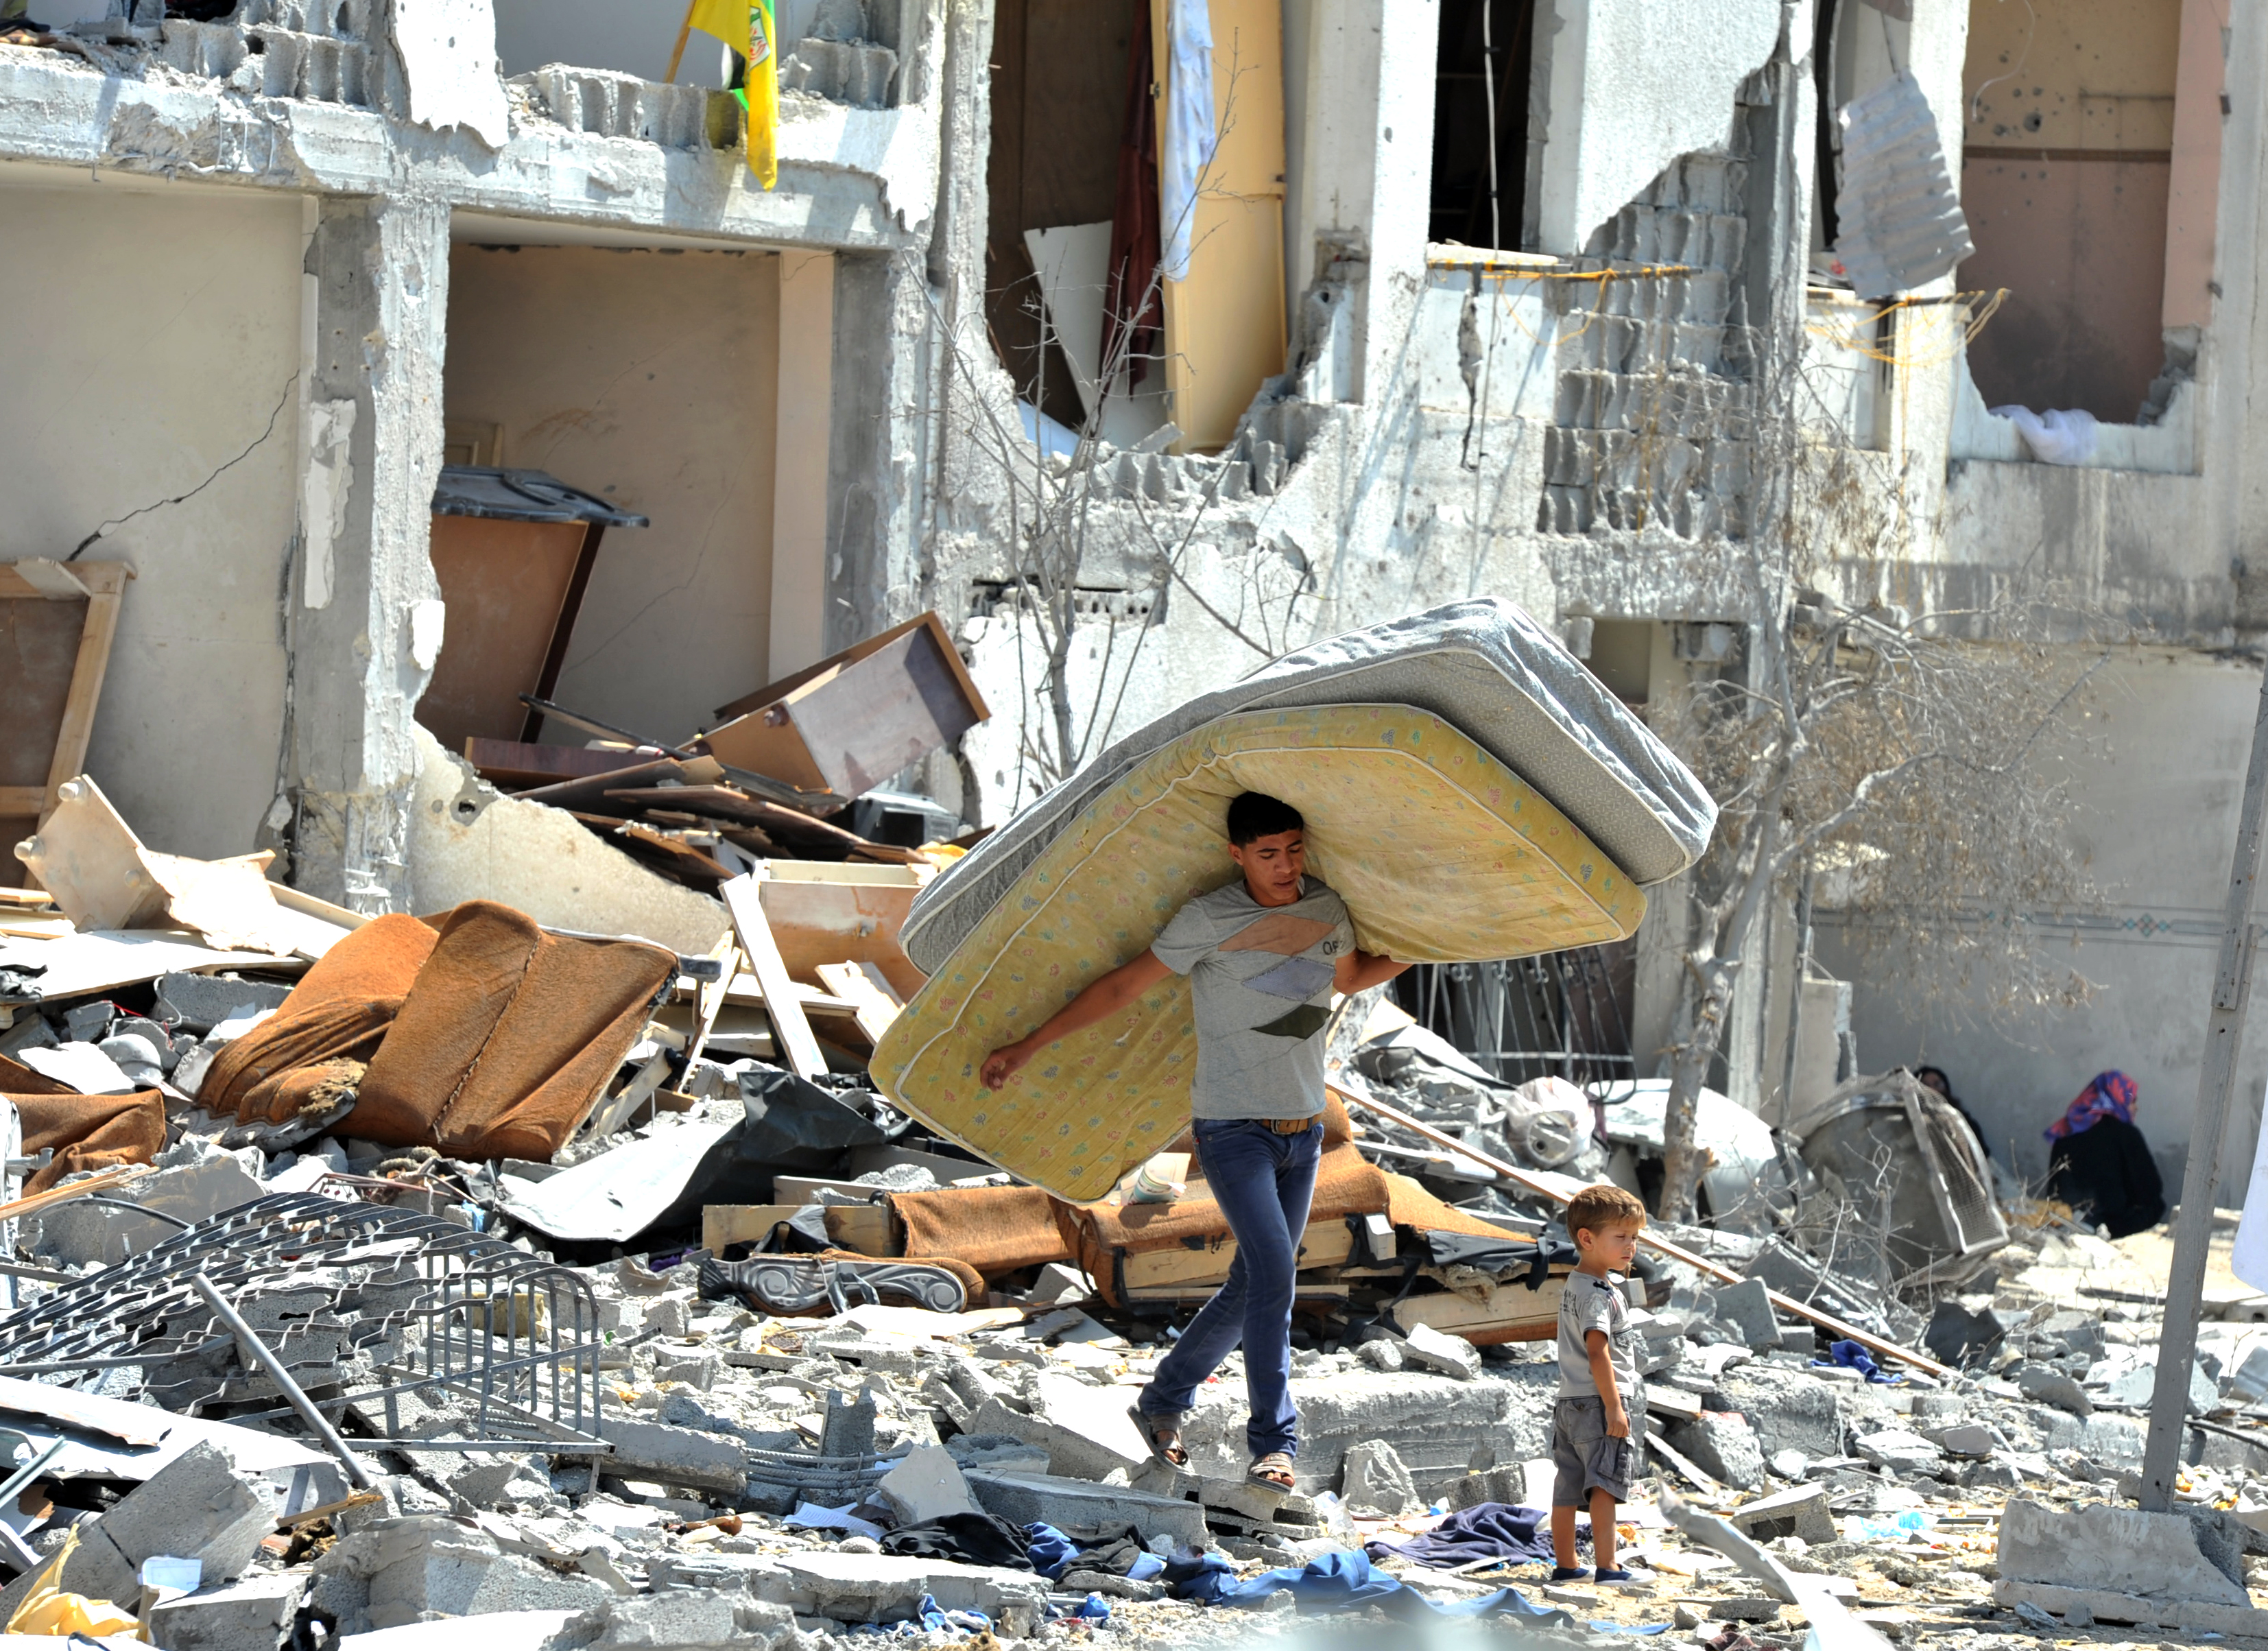 Gaza Crisis (Credit: Flickr - United Nations Photostream)